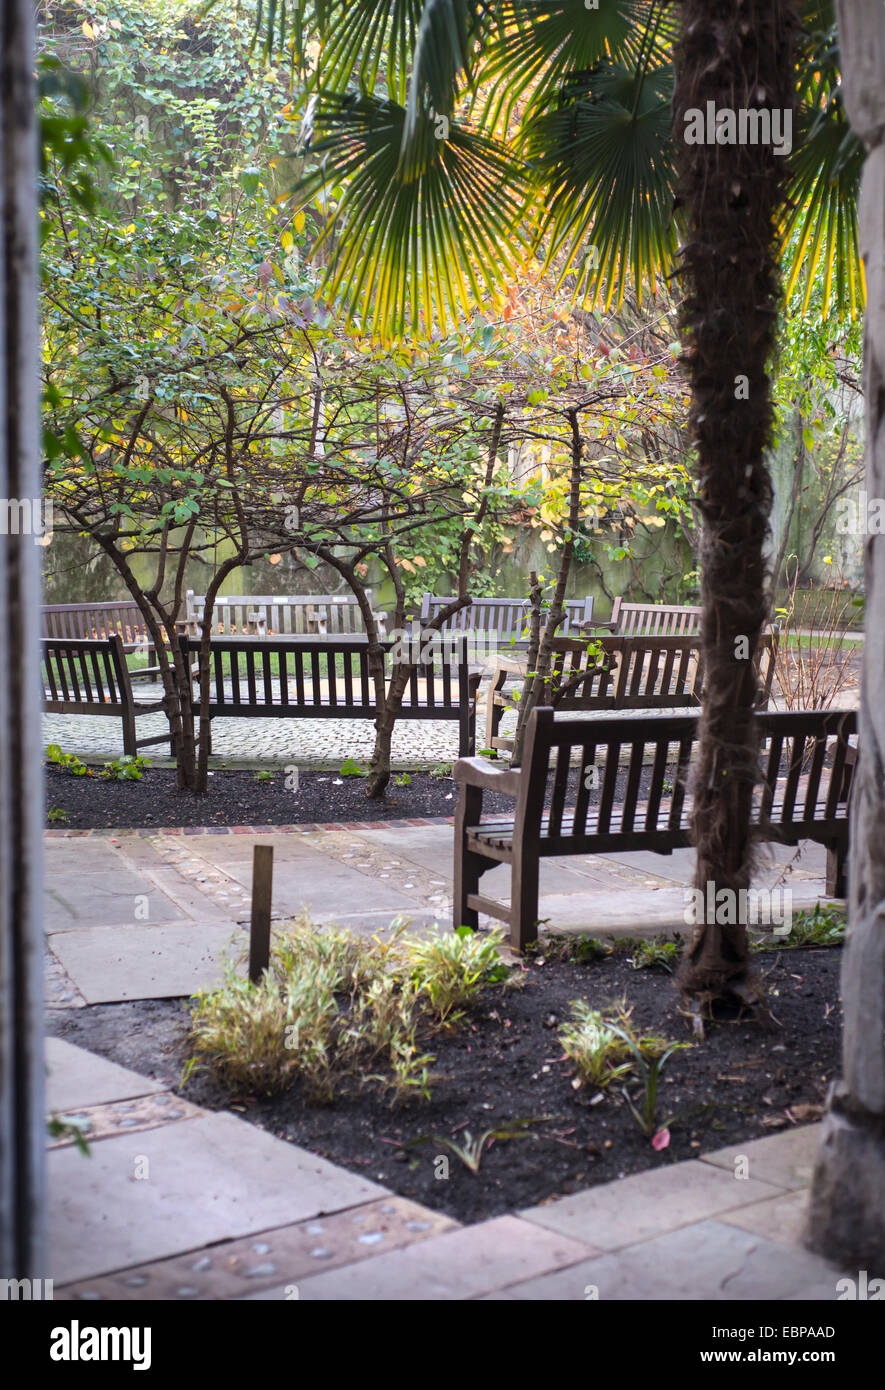 Hidden garden in the ruins of St Dunstan in the East medieval church in the City of London, England, UK - Stock Image